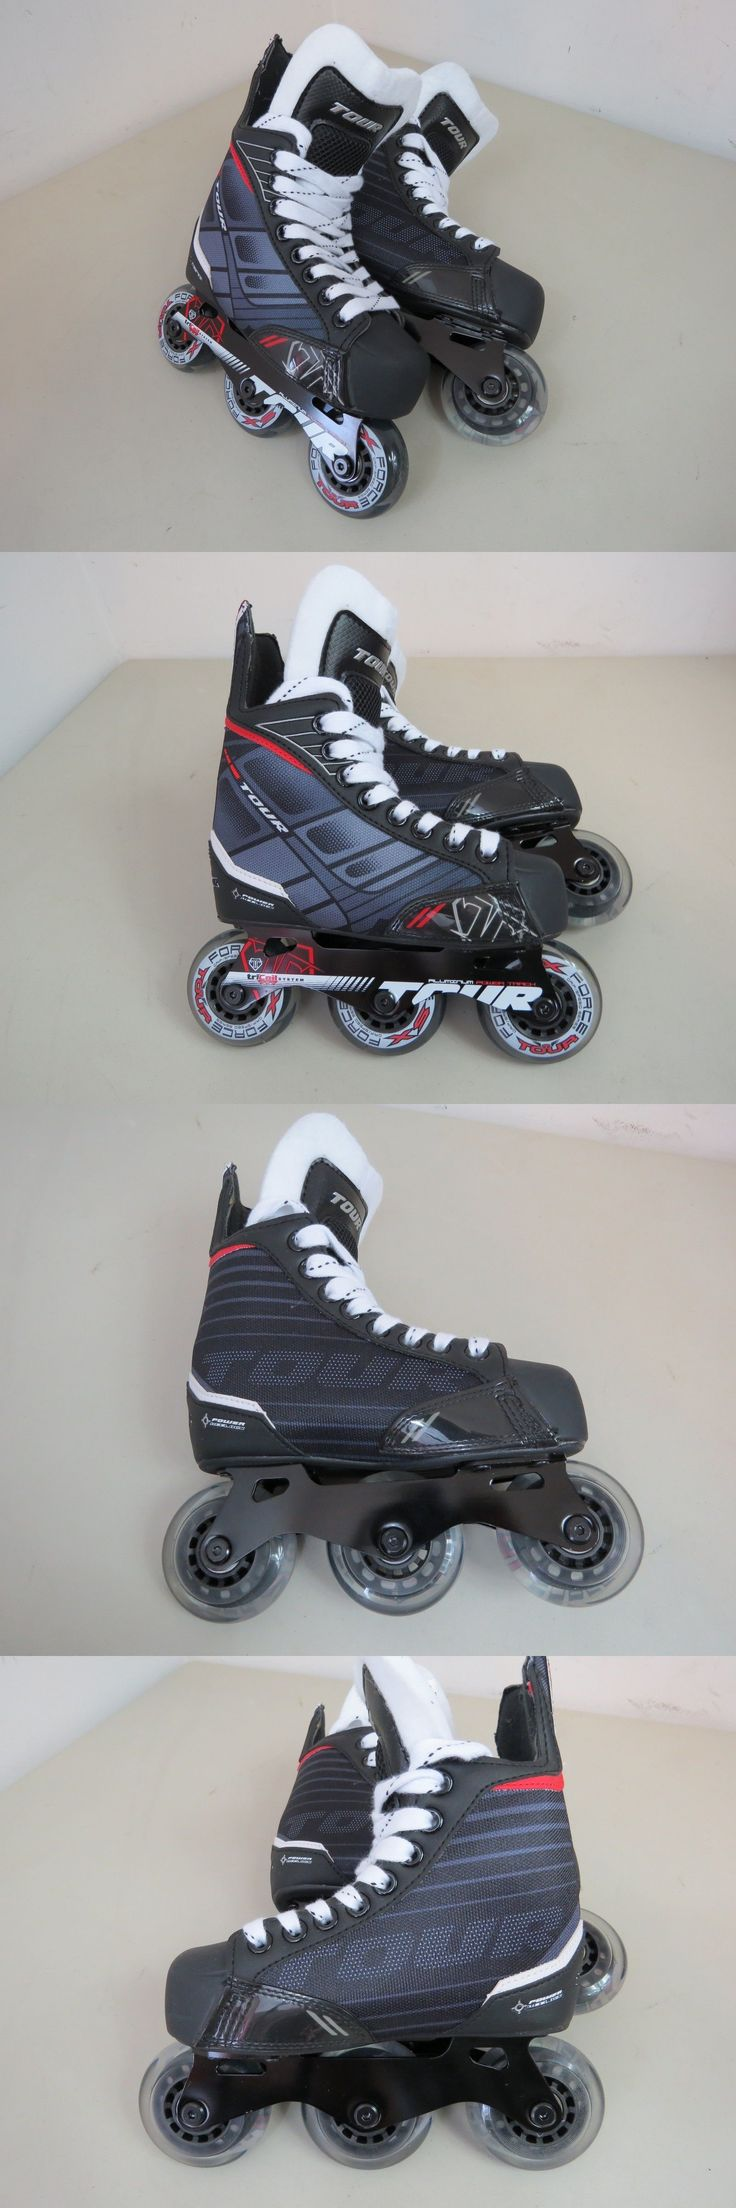 Roller Hockey 64669: Tour Hockey Fb-225 Junior Roller Hockey Skates, Size 12J Youth - New Without Box -> BUY IT NOW ONLY: $40 on eBay!